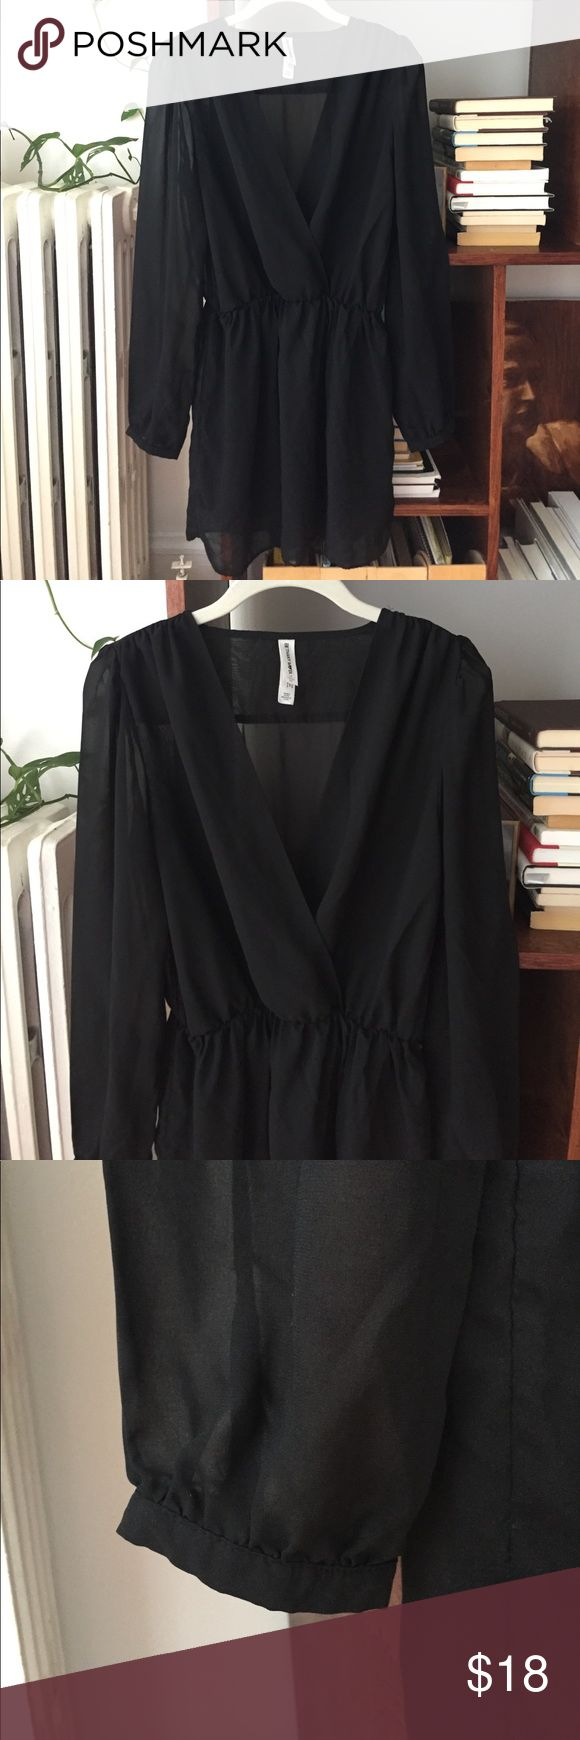 Adorable black mini dress with cinched waist The skirt part is lined, making the top layer flow really nicely - only worn a couple of times - Bethany Mota brand Aeropostale Dresses Mini